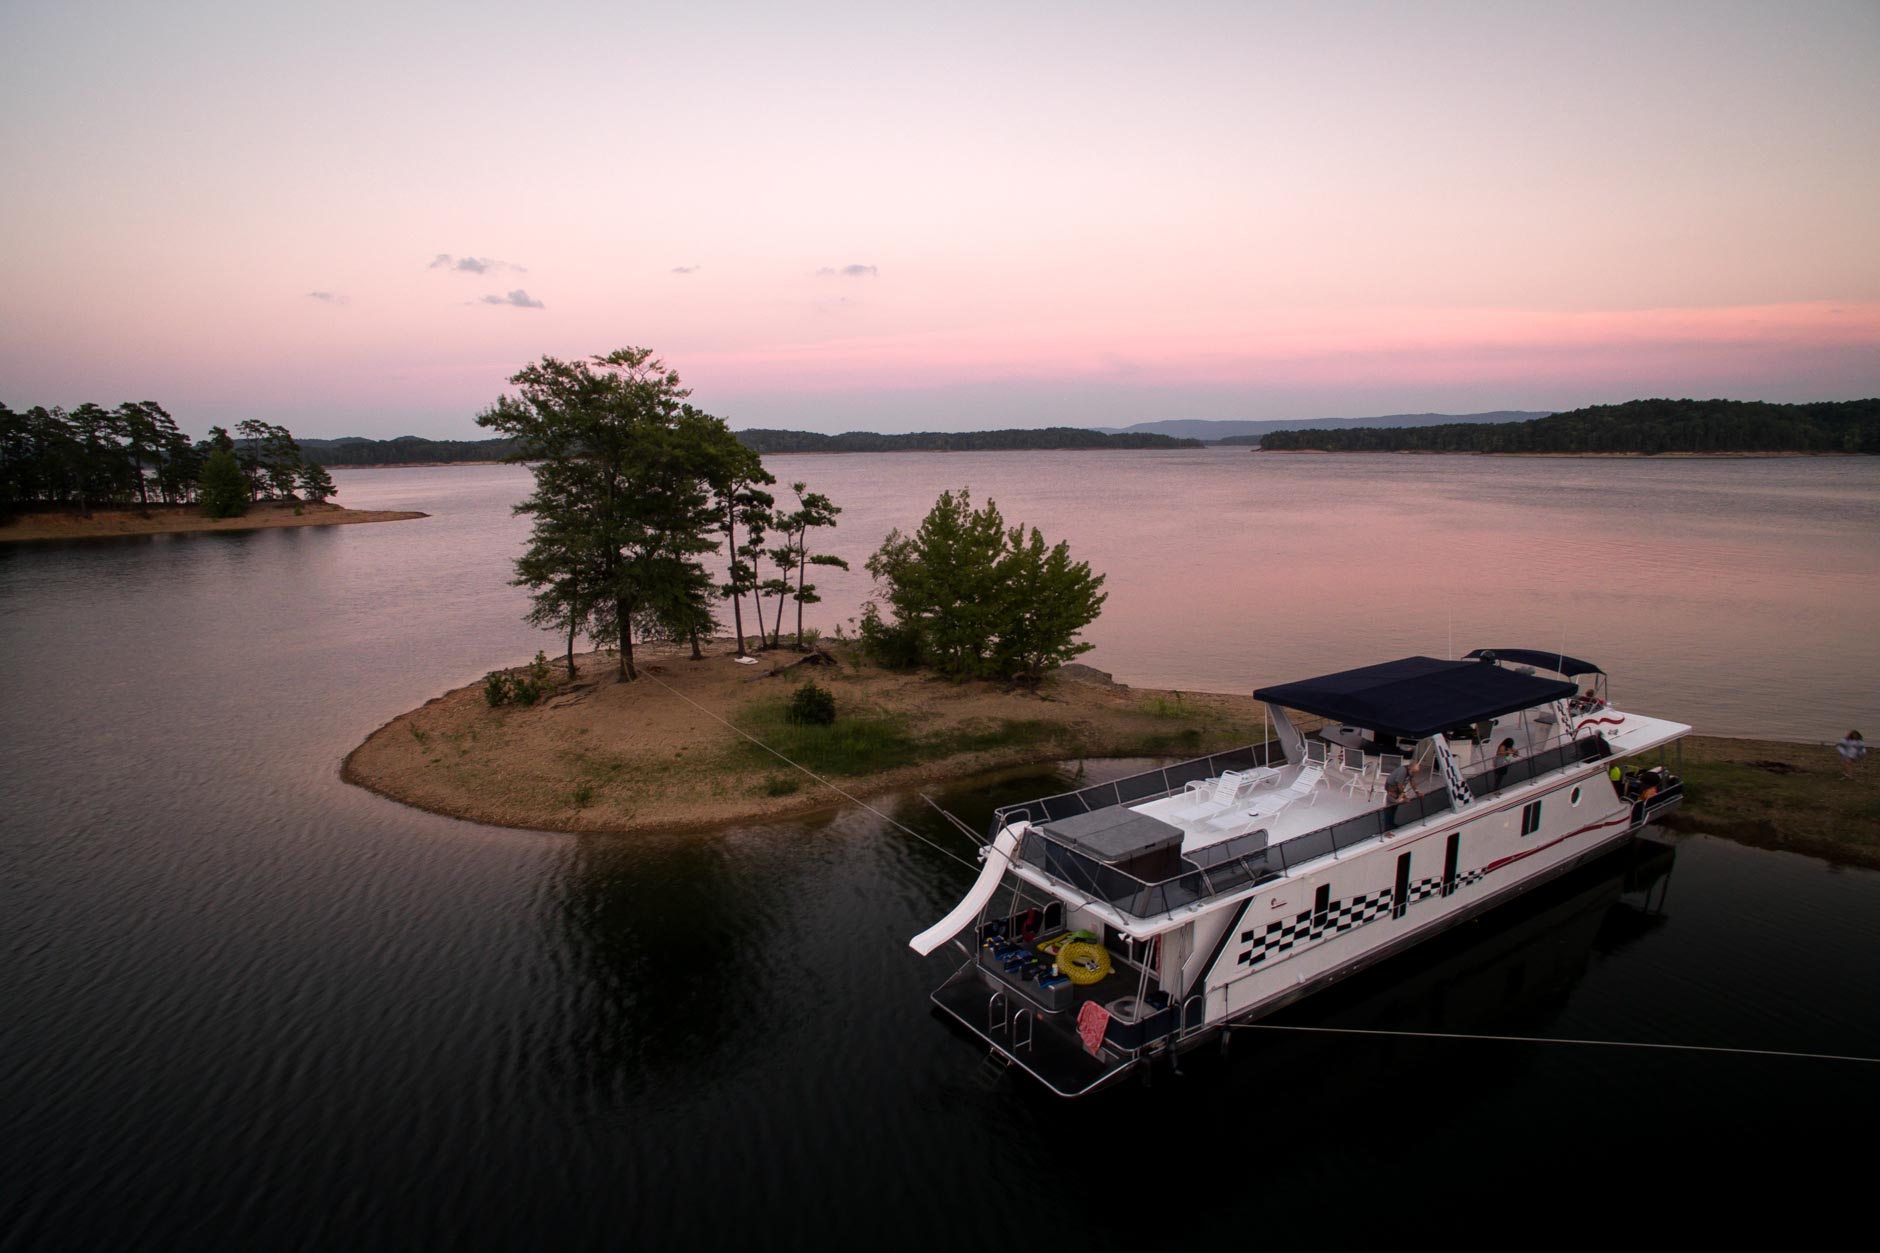 A DreamChaser boat is docked in a cove on Lake Ouachita, Arkansas on Monday, Aug. 20, 2018. (Photo by James Brosher)